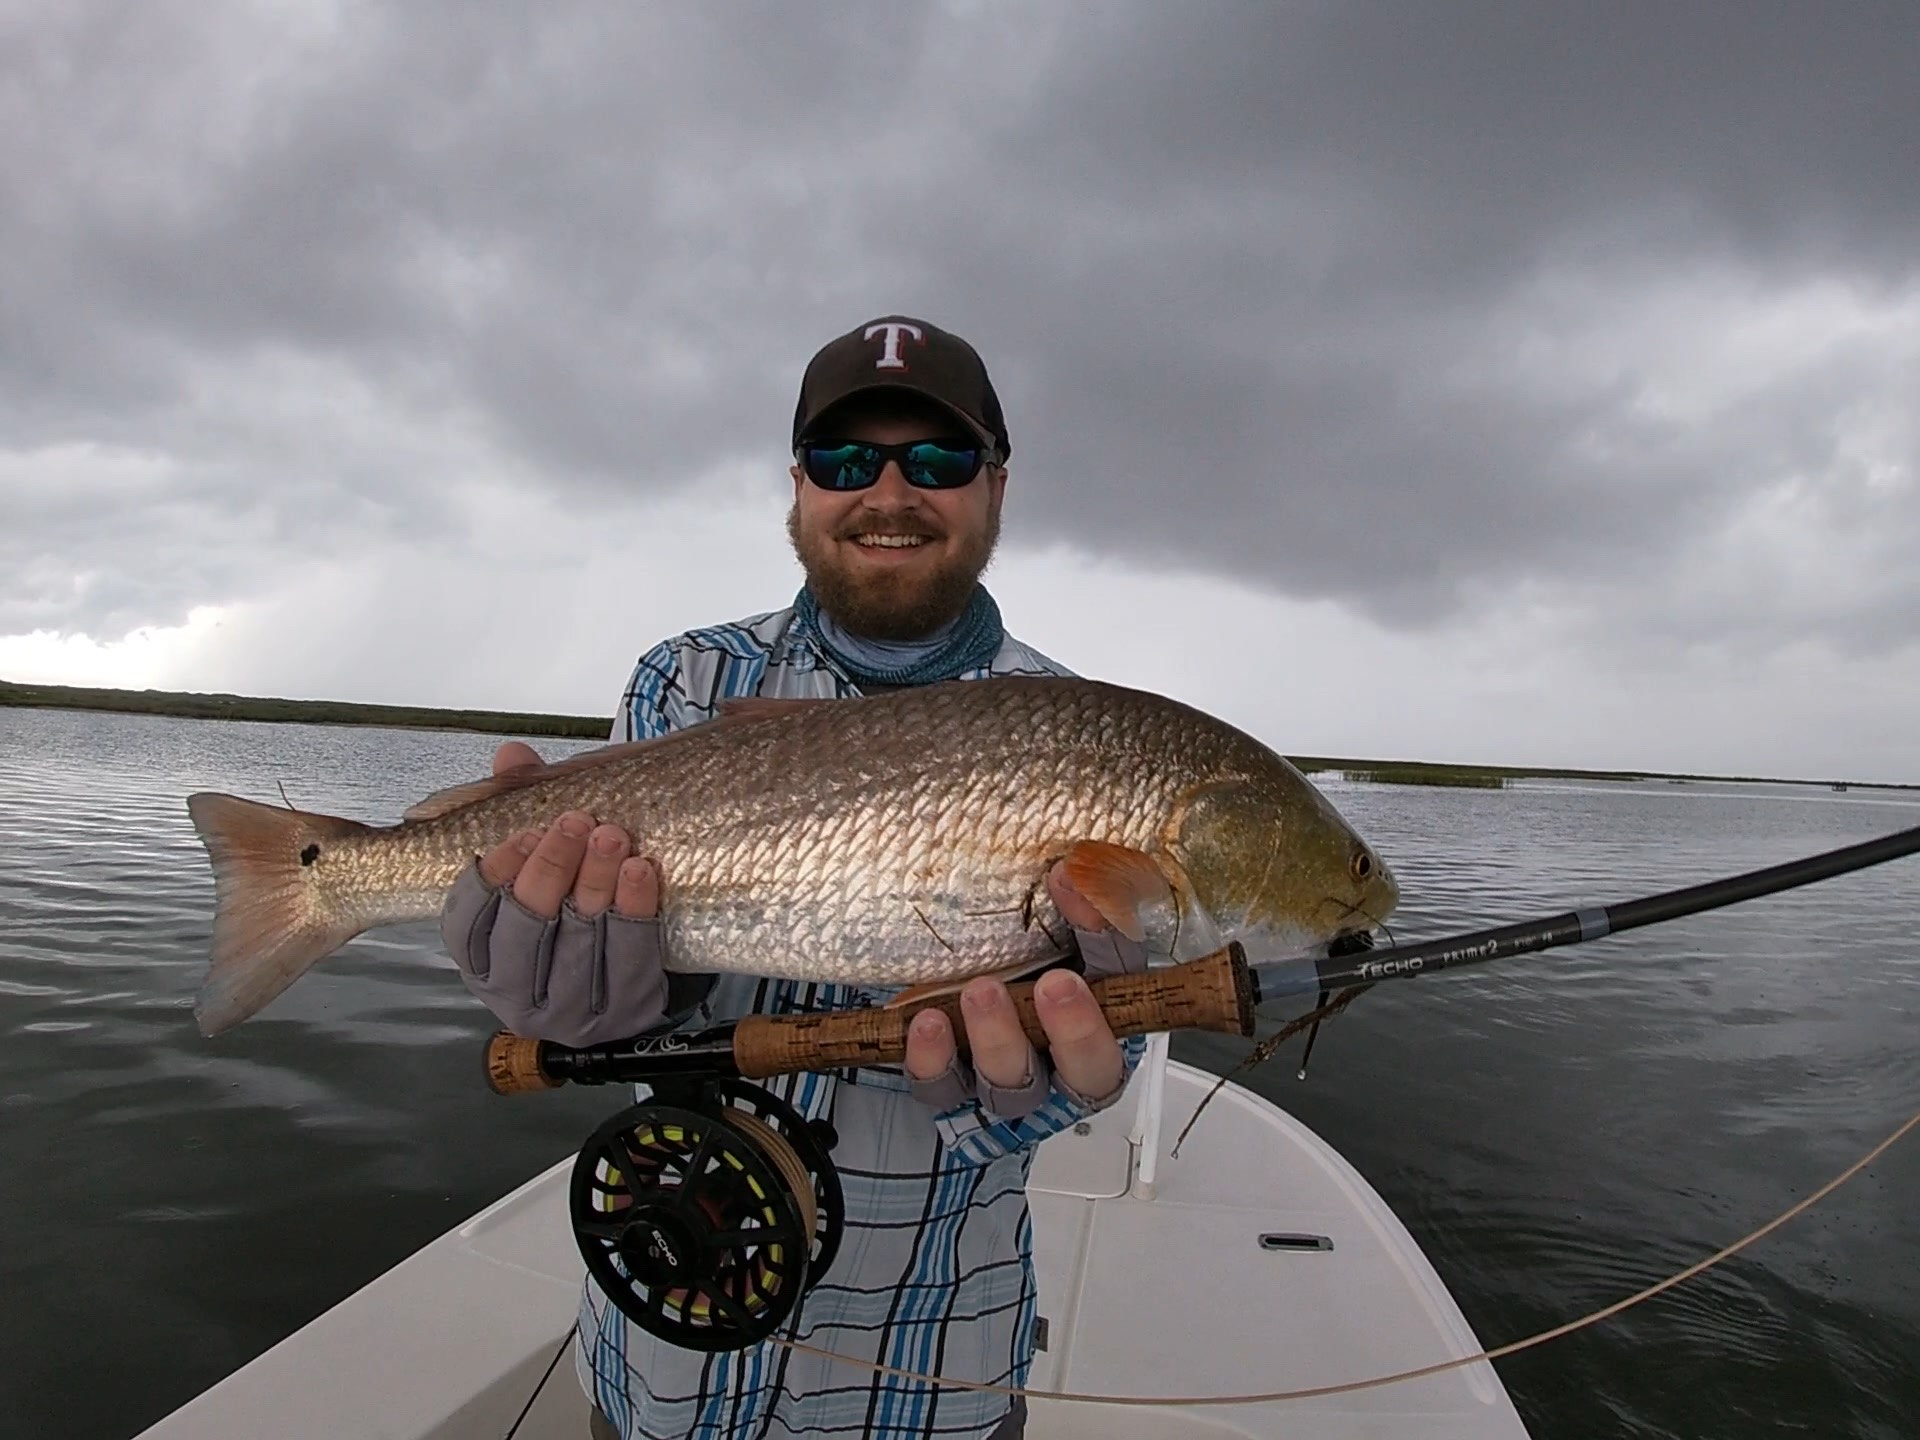 Only two spots left for Texas Coast outing June 17-20